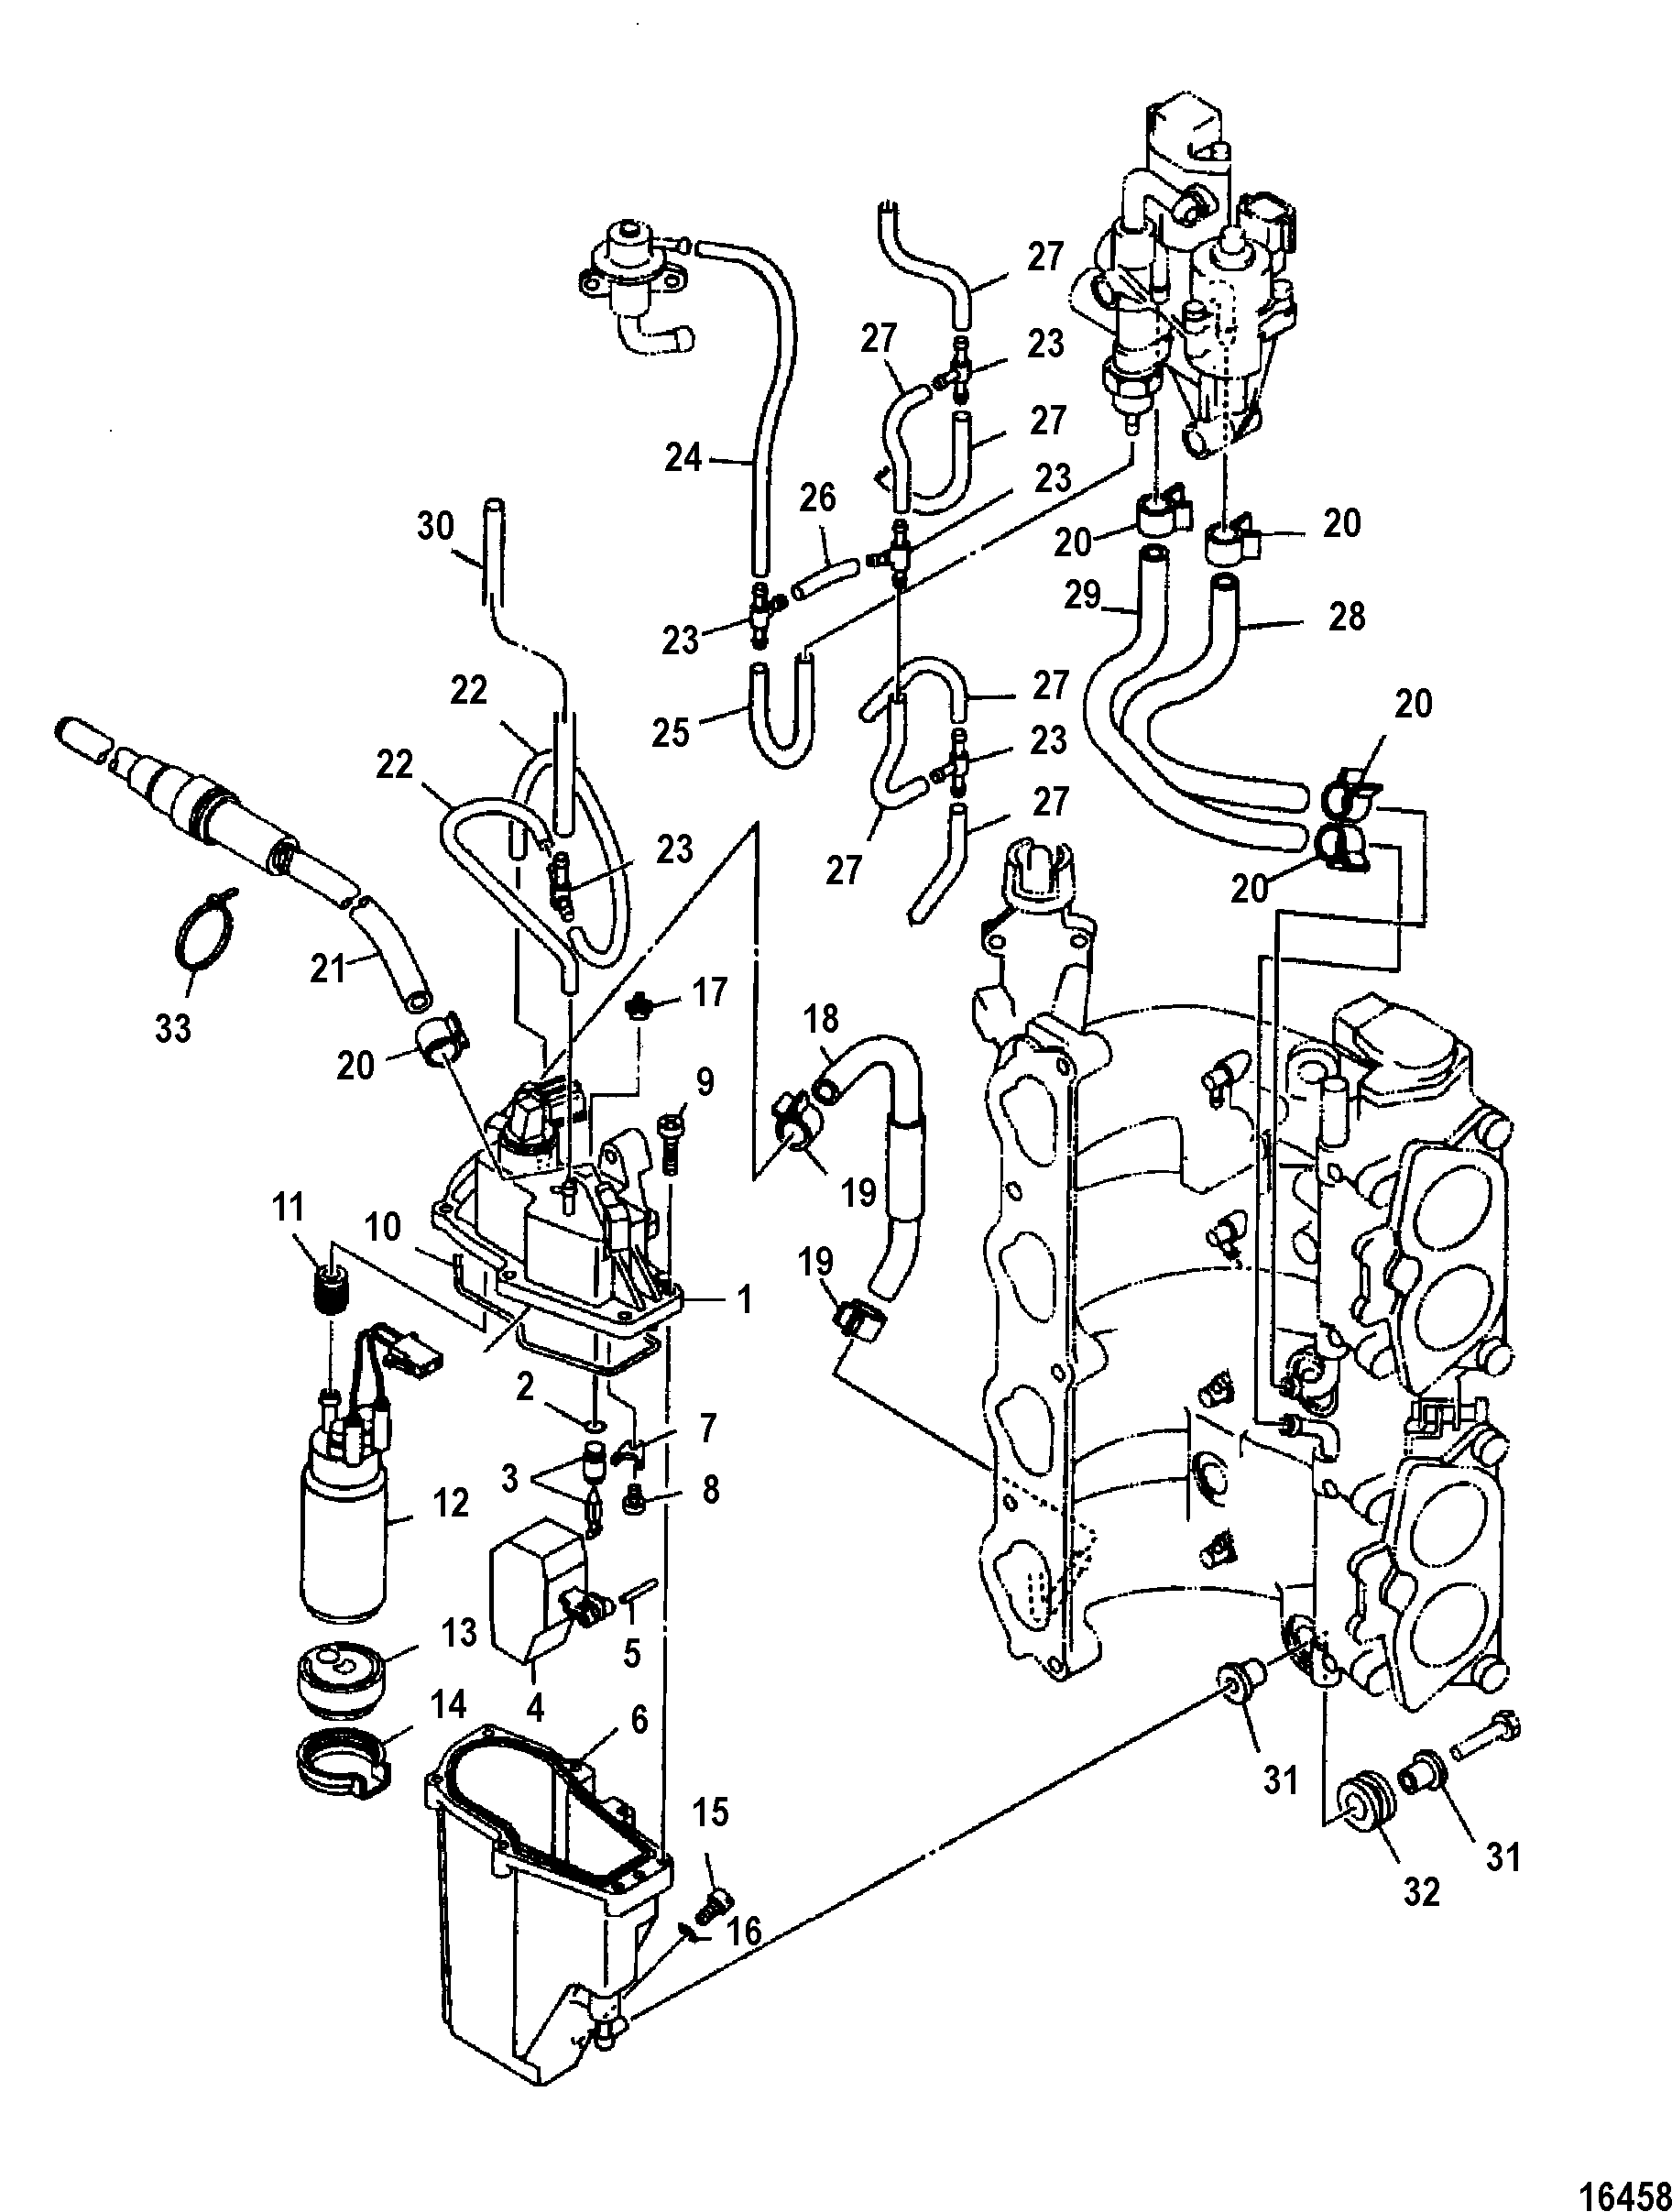 Yamaha 115 4 Stroke Fuel System Diagram